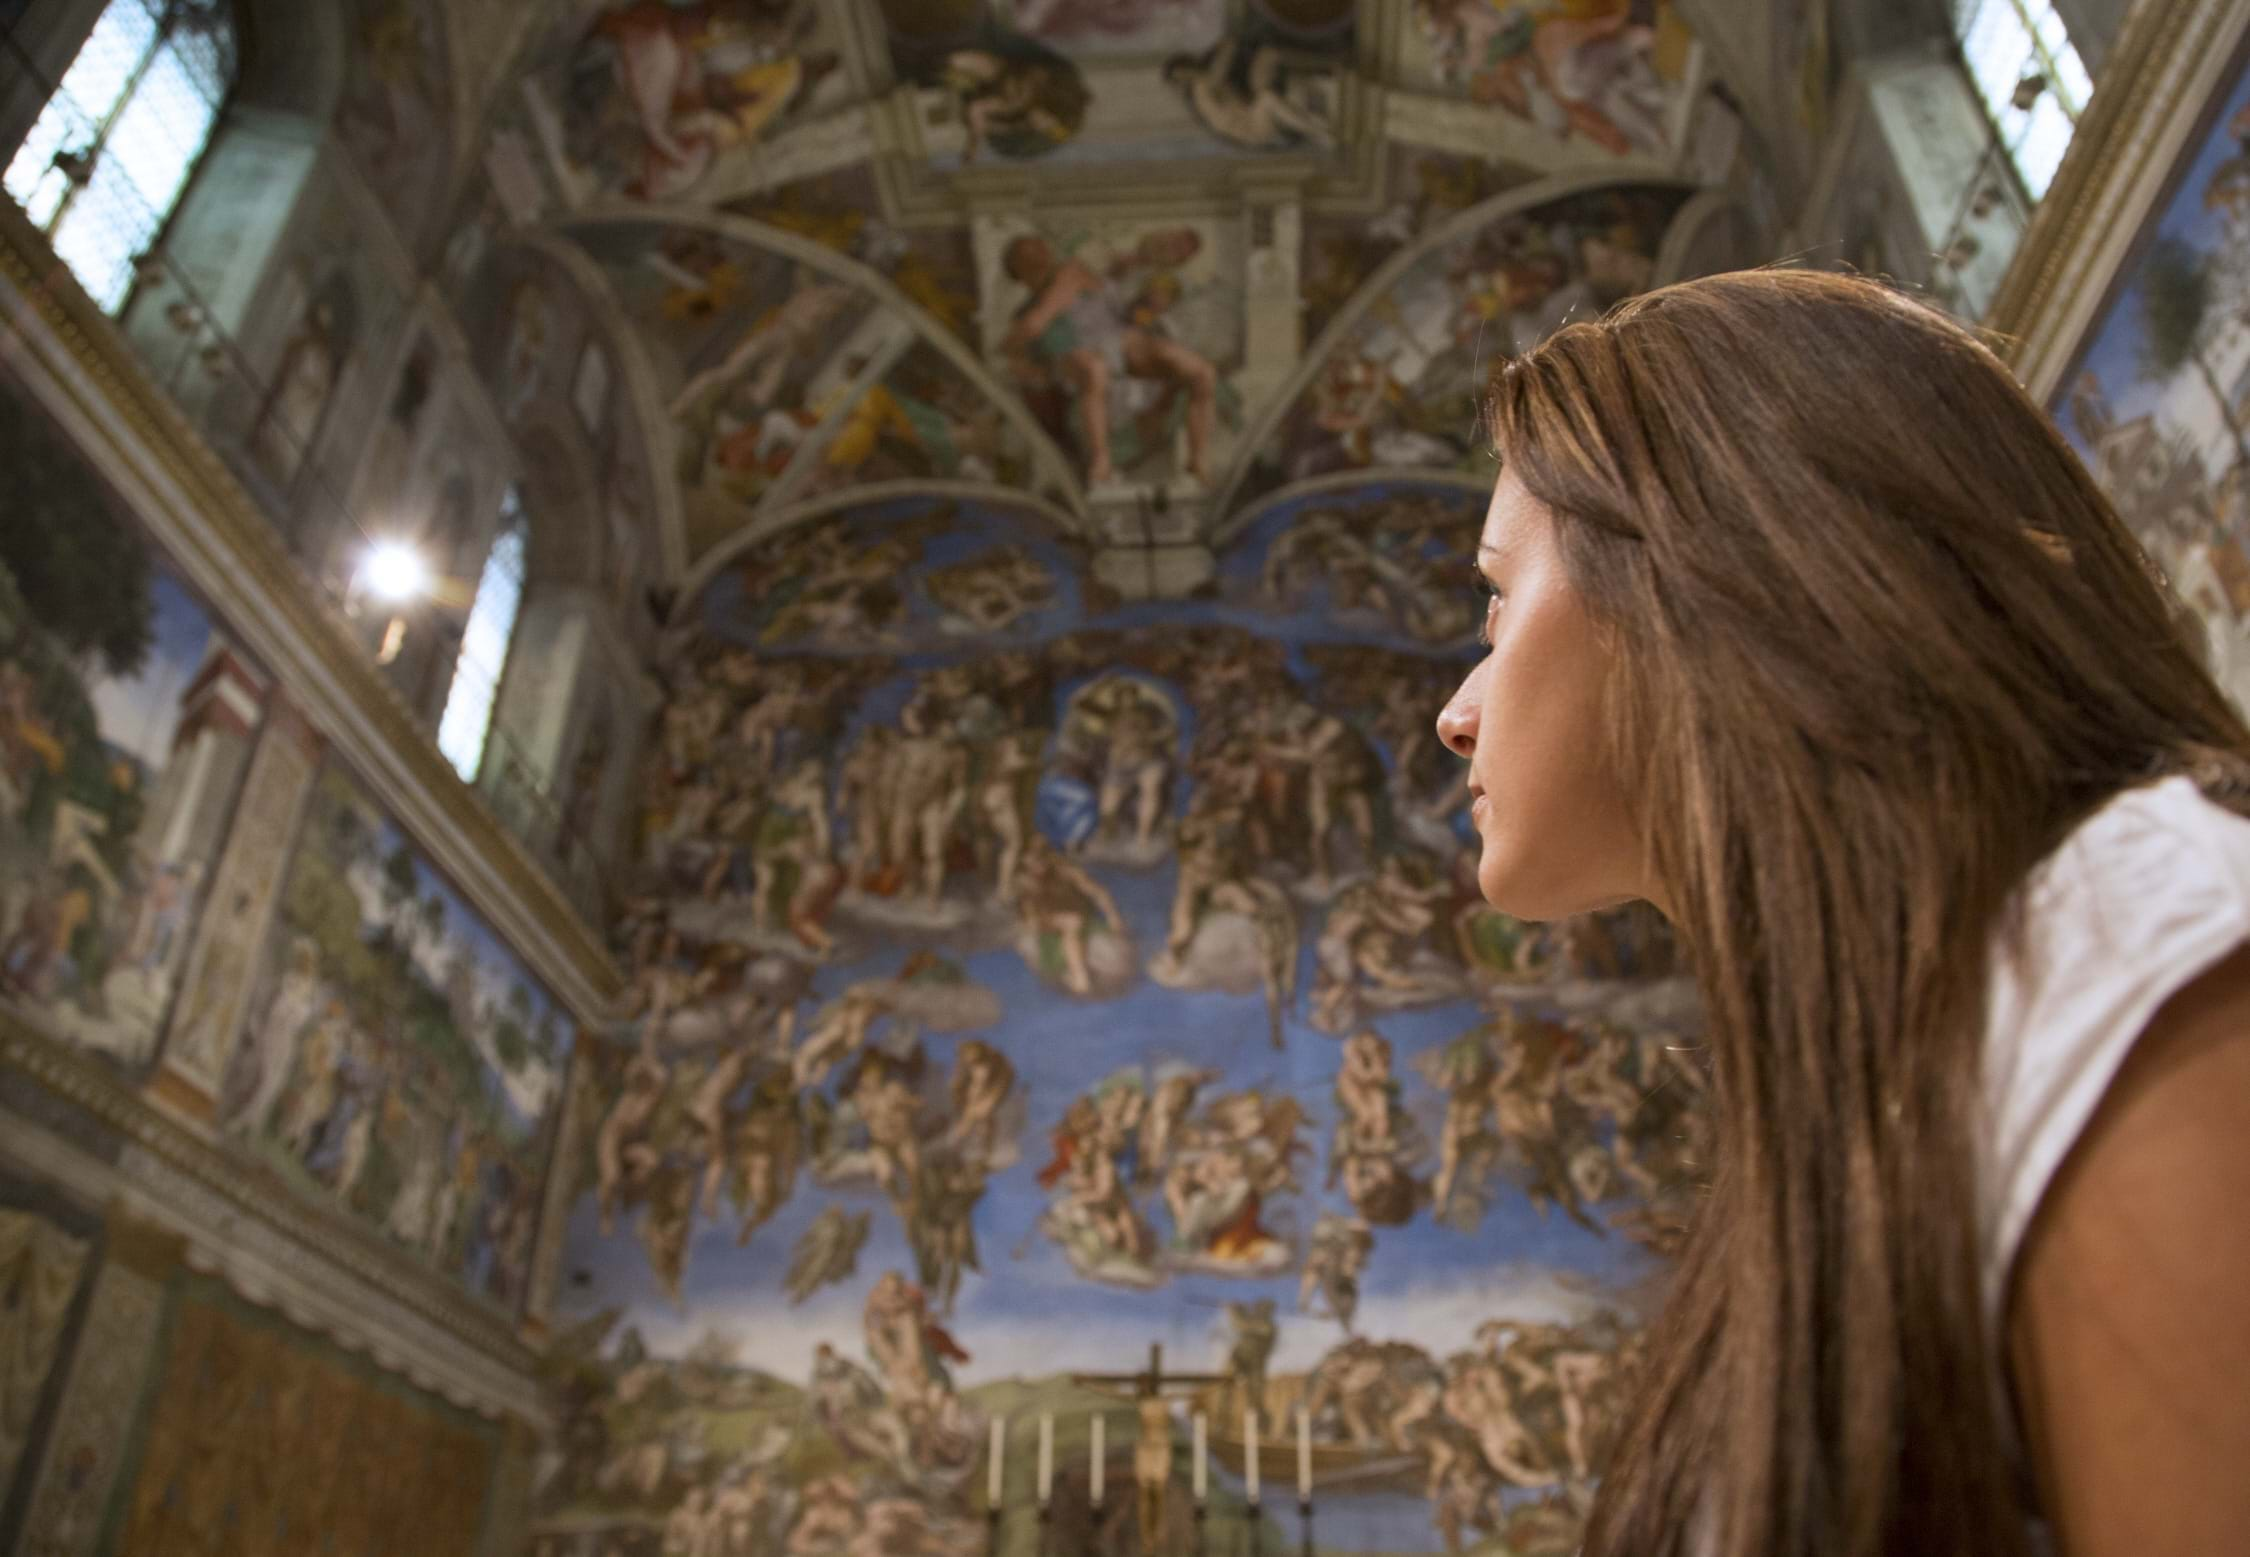 sistine chapels the creation of adam The creation of adam is a detail of the ceiling fresco of the sistine chapel created by michelangelo at some point between 1511 to 1512 it depicts the birth of the biblical adam according to the passage in the book of genesis.